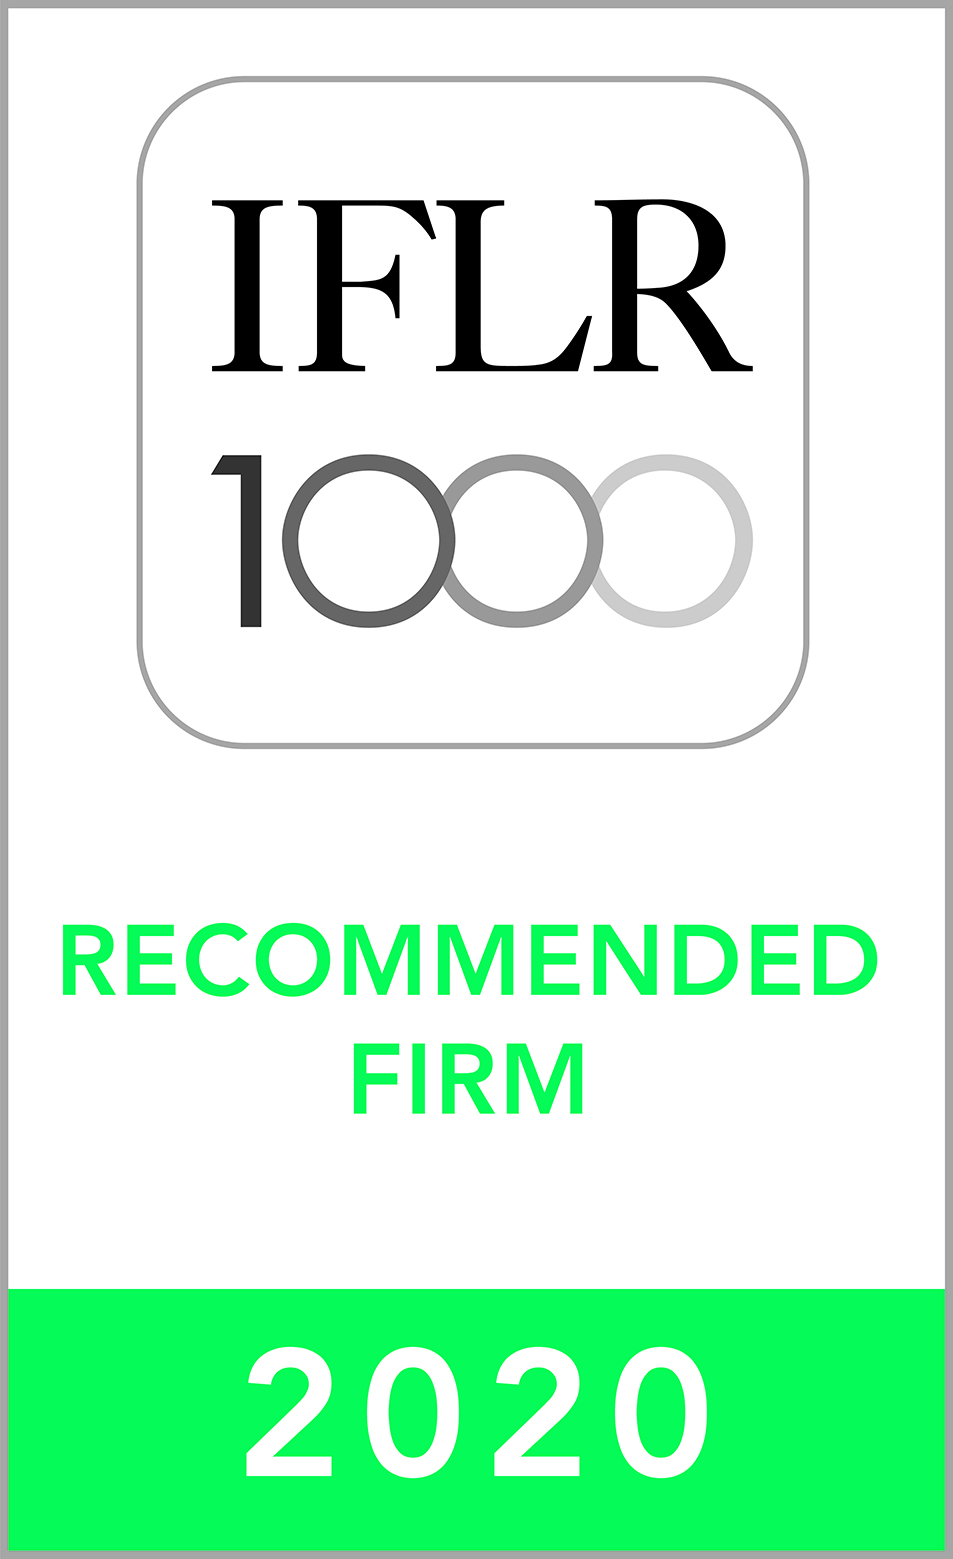 IFLR1000 (2019) Recommended Firm Rosette_2